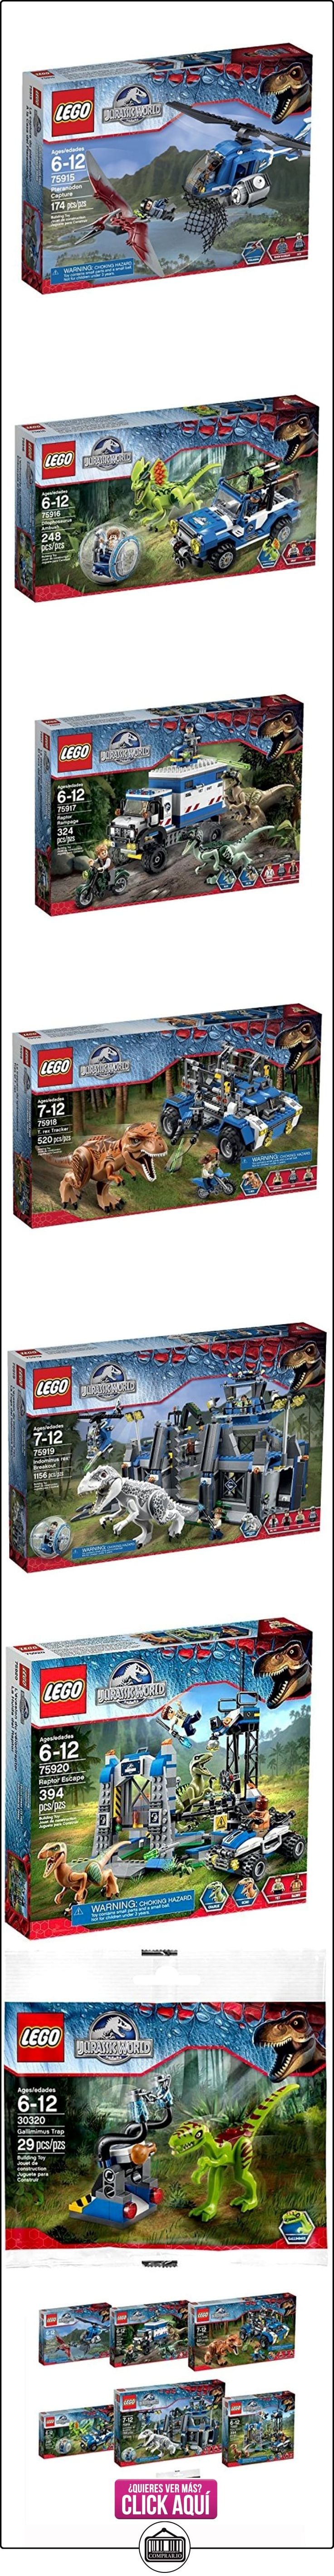 LEGO Jurassic World Entire Theme of 6 Building Sets + 1 Polybag by LEGO  ✿ Lego - el surtido más amplio ✿ ▬► Ver oferta: https://comprar.io/goto/B0121T3EB4